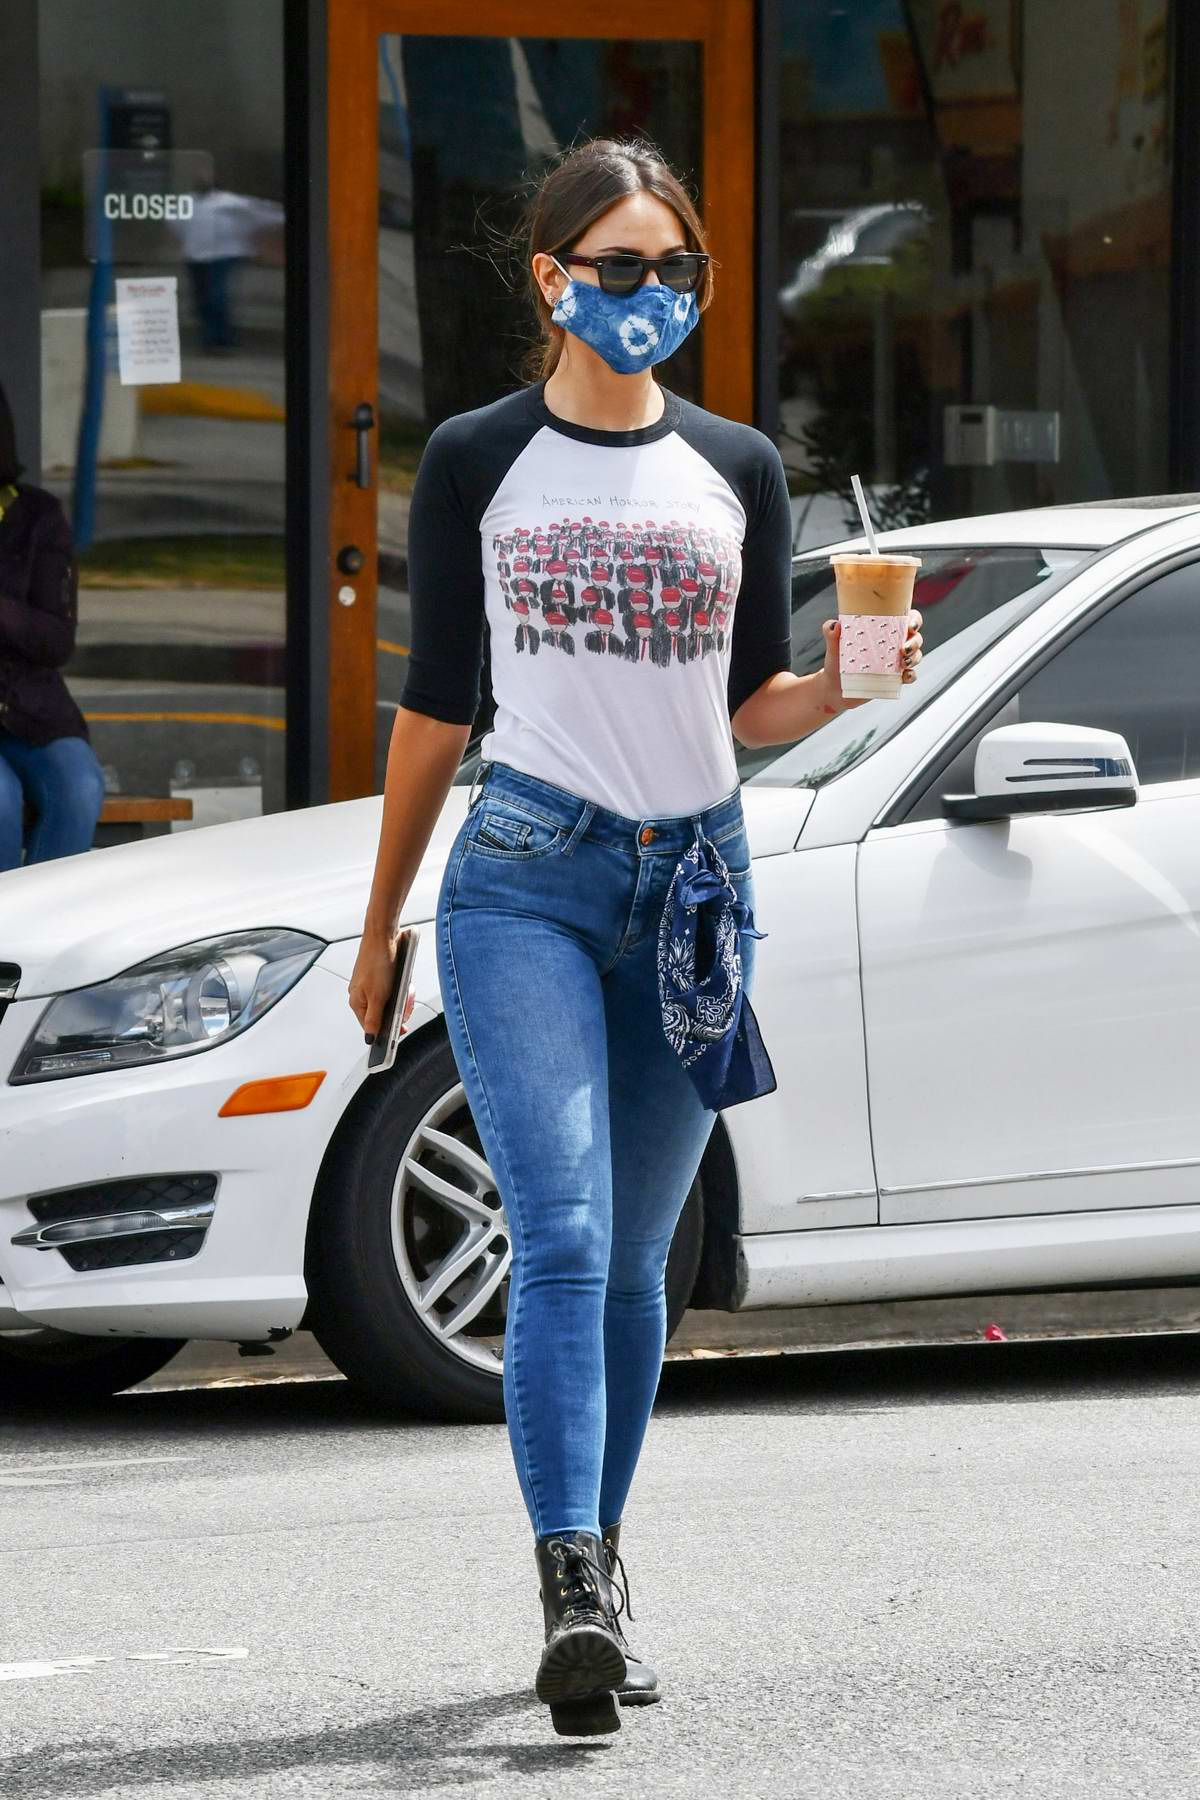 Eiza Gonzalez rocks skinny jeans with a black and white top as she steps out for coffee in Los Angeles